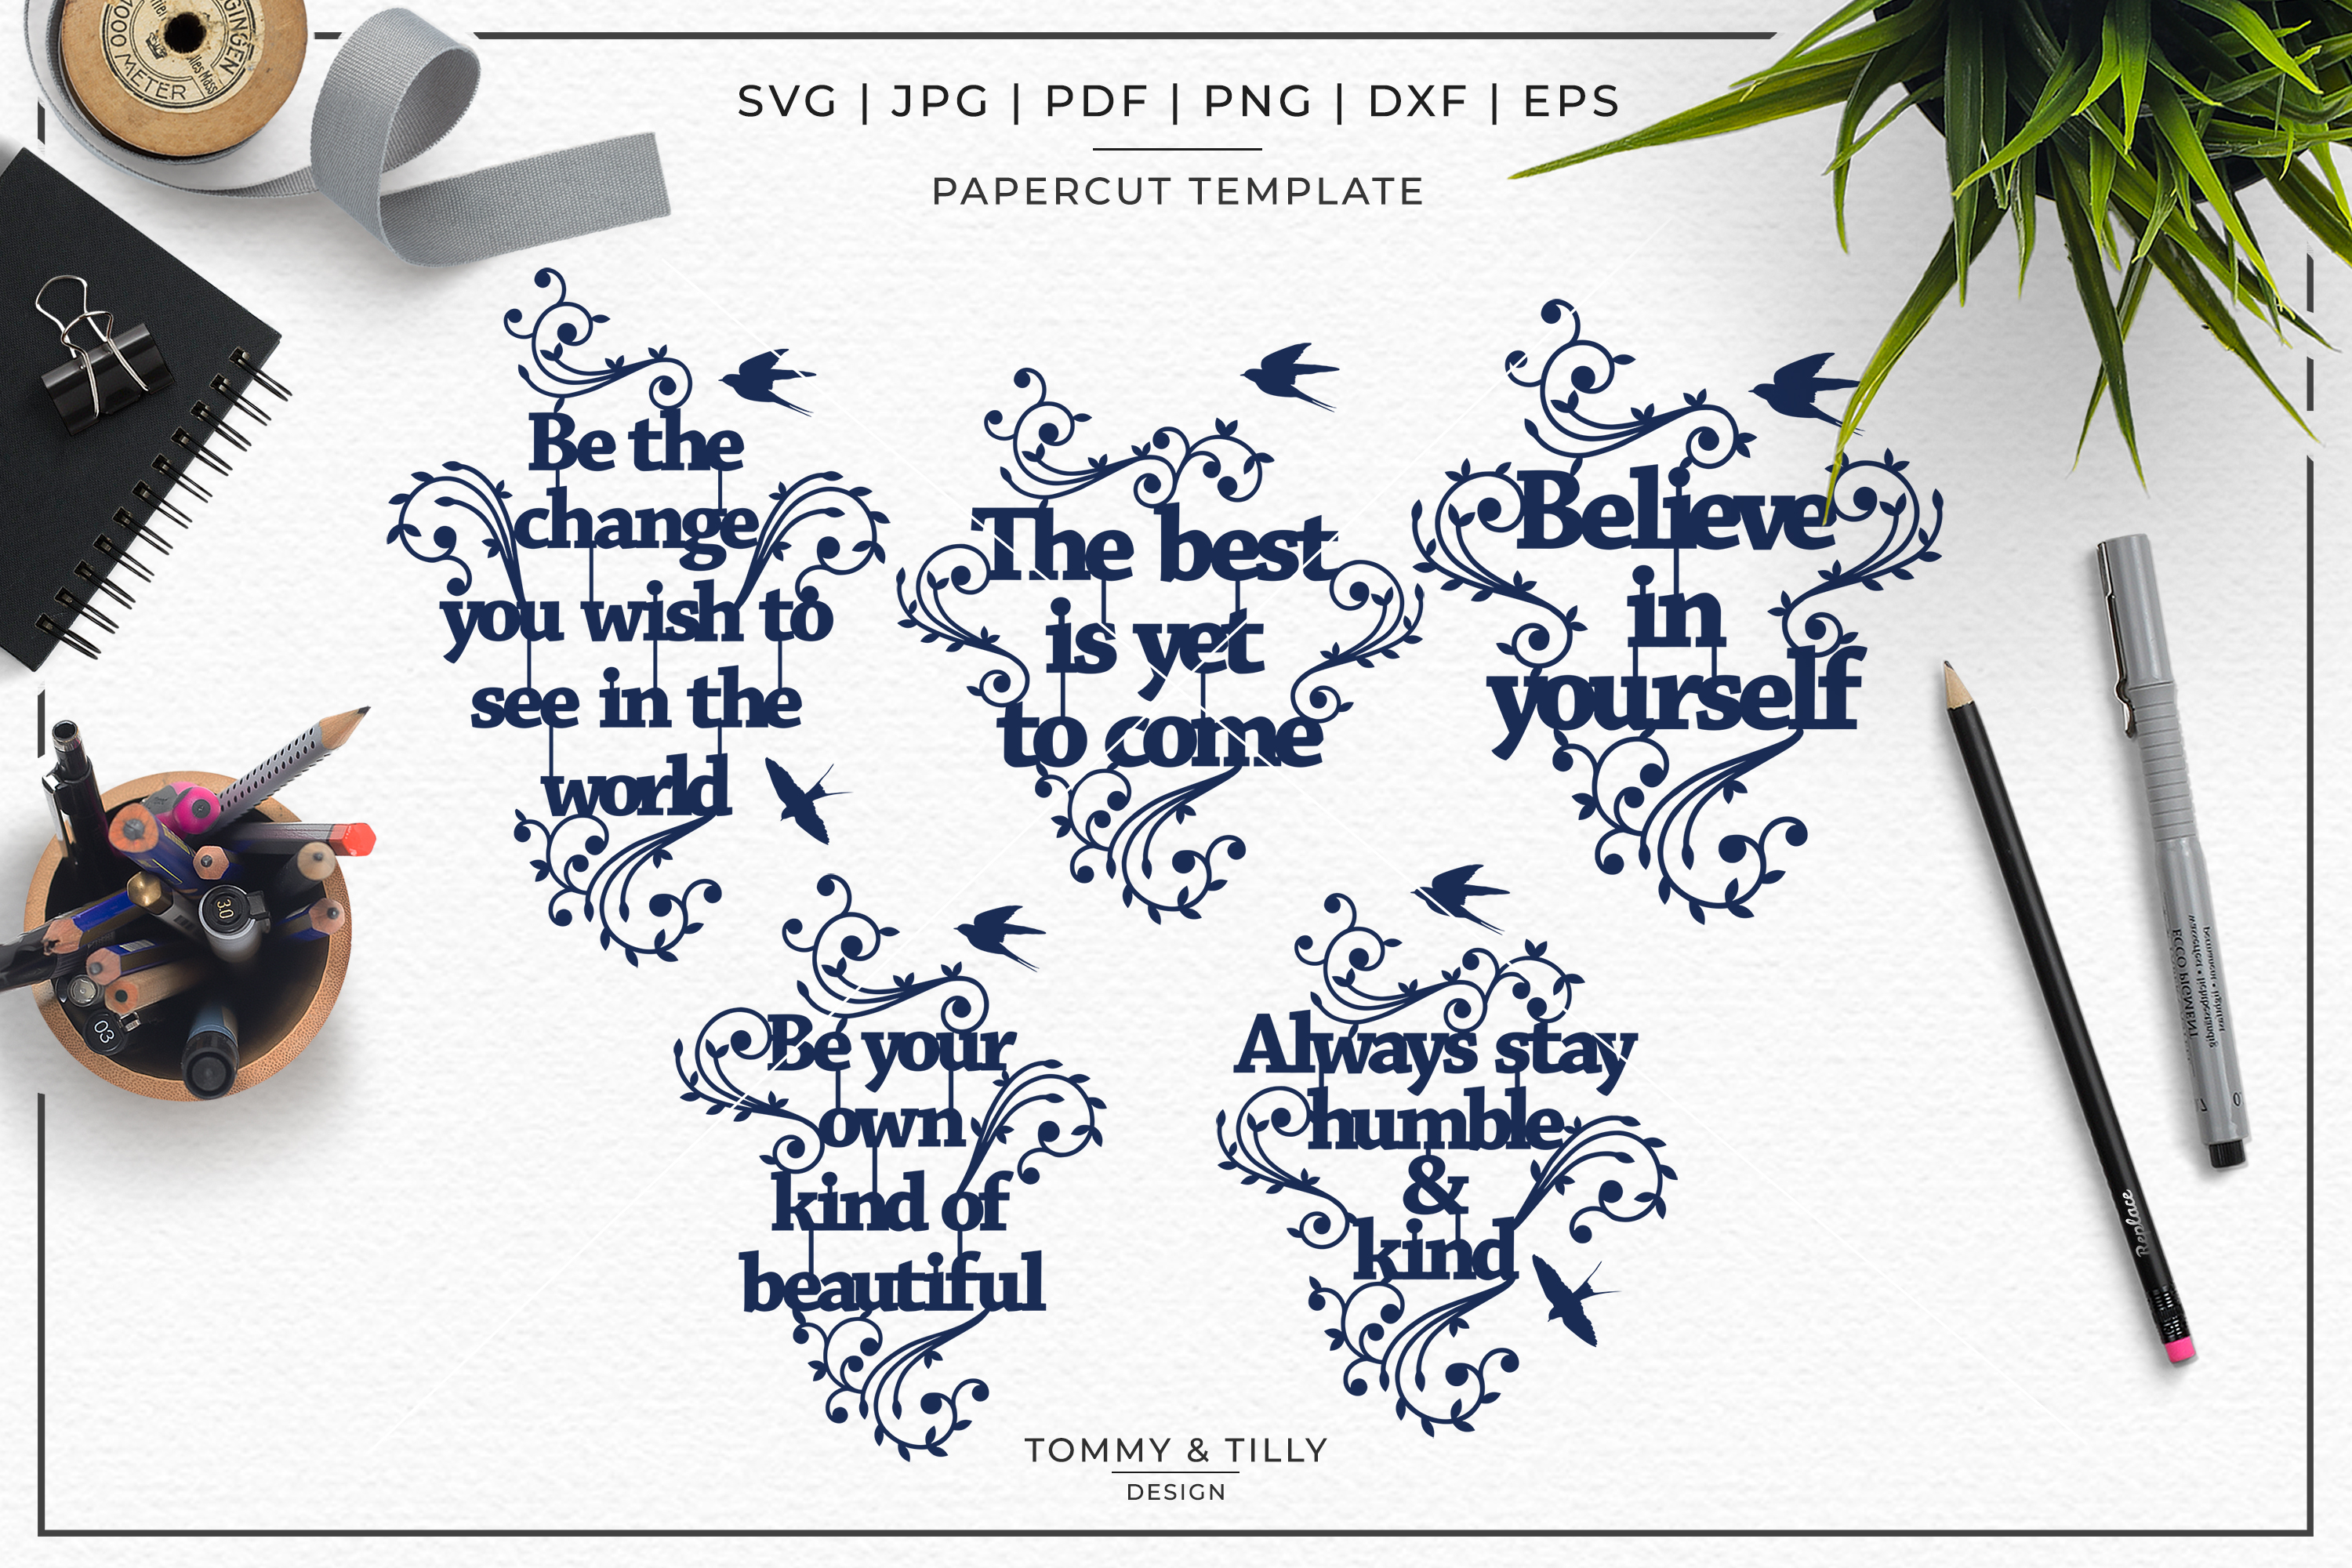 Inspirational Quotes Bundle - Papercut SVG DXF PNG JPG PD example image 2